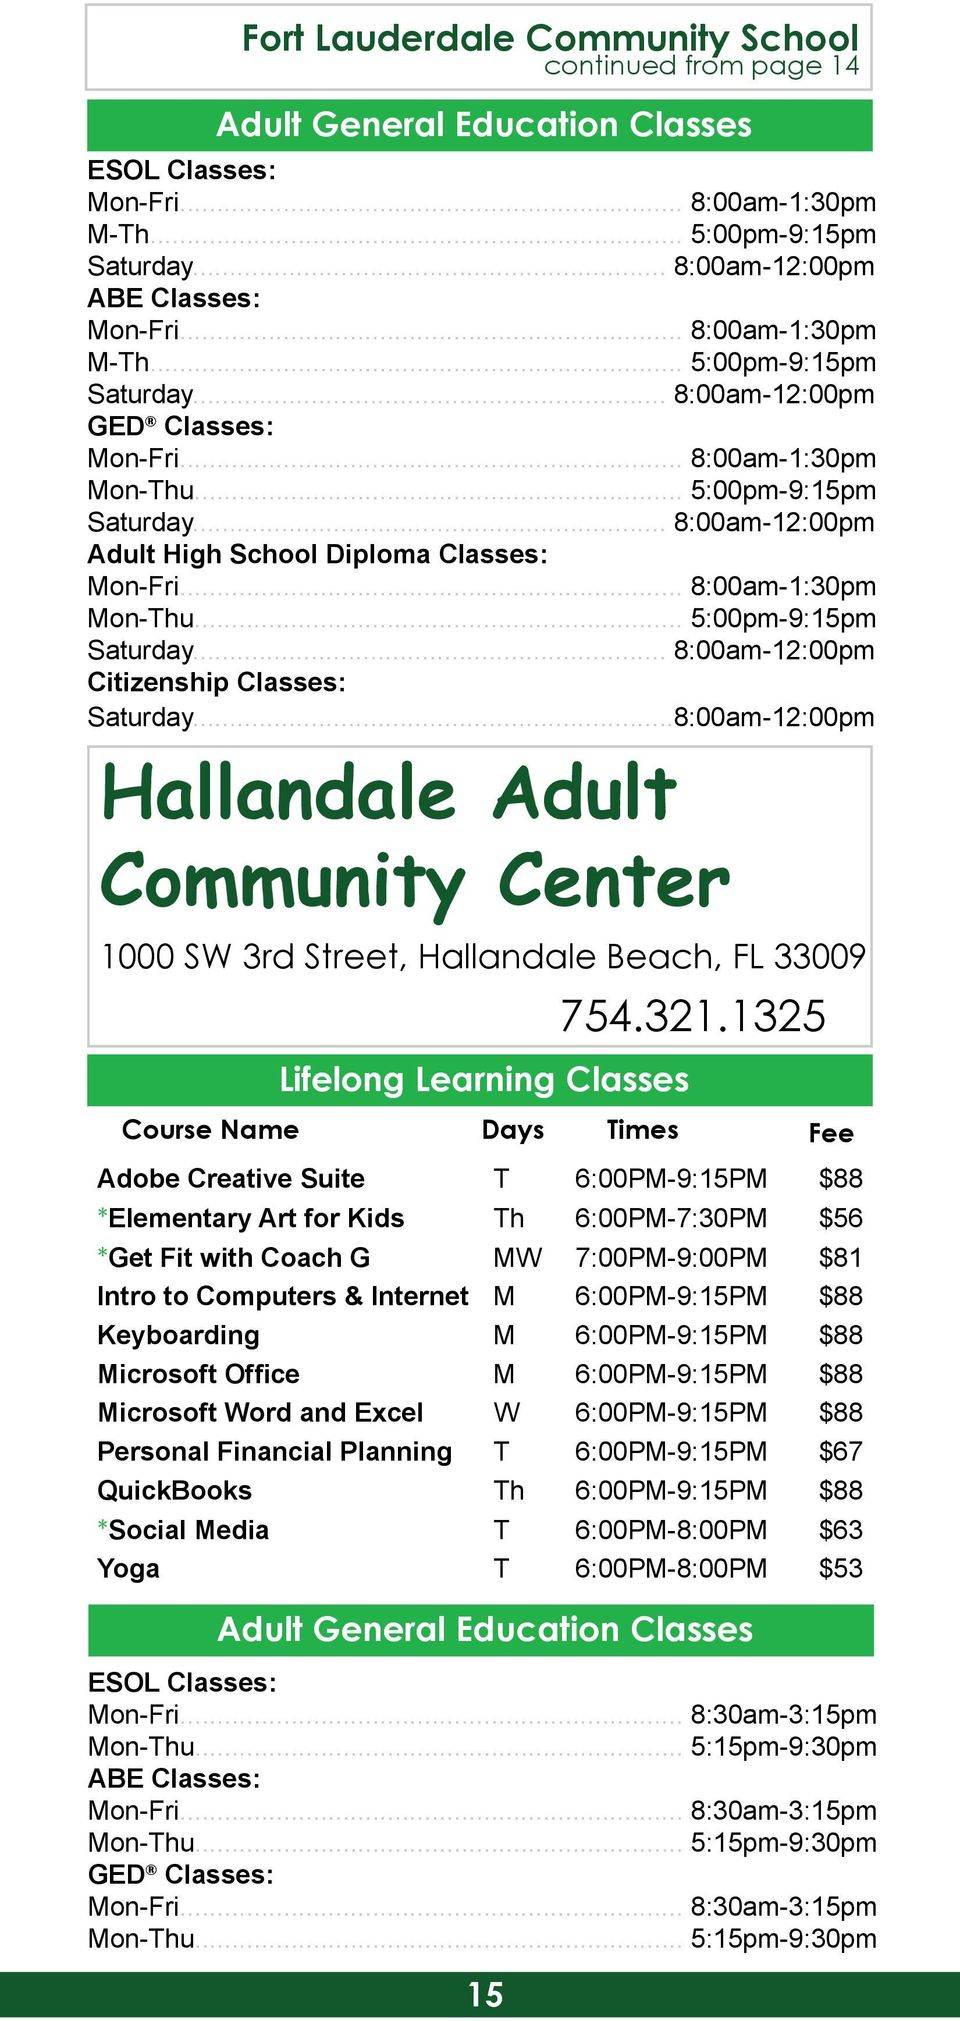 ..8:00am-12:00pm Hallandale Adult Community Center 1000 SW 3rd Street, Hallandale Beach, FL 33009 15 754.321.